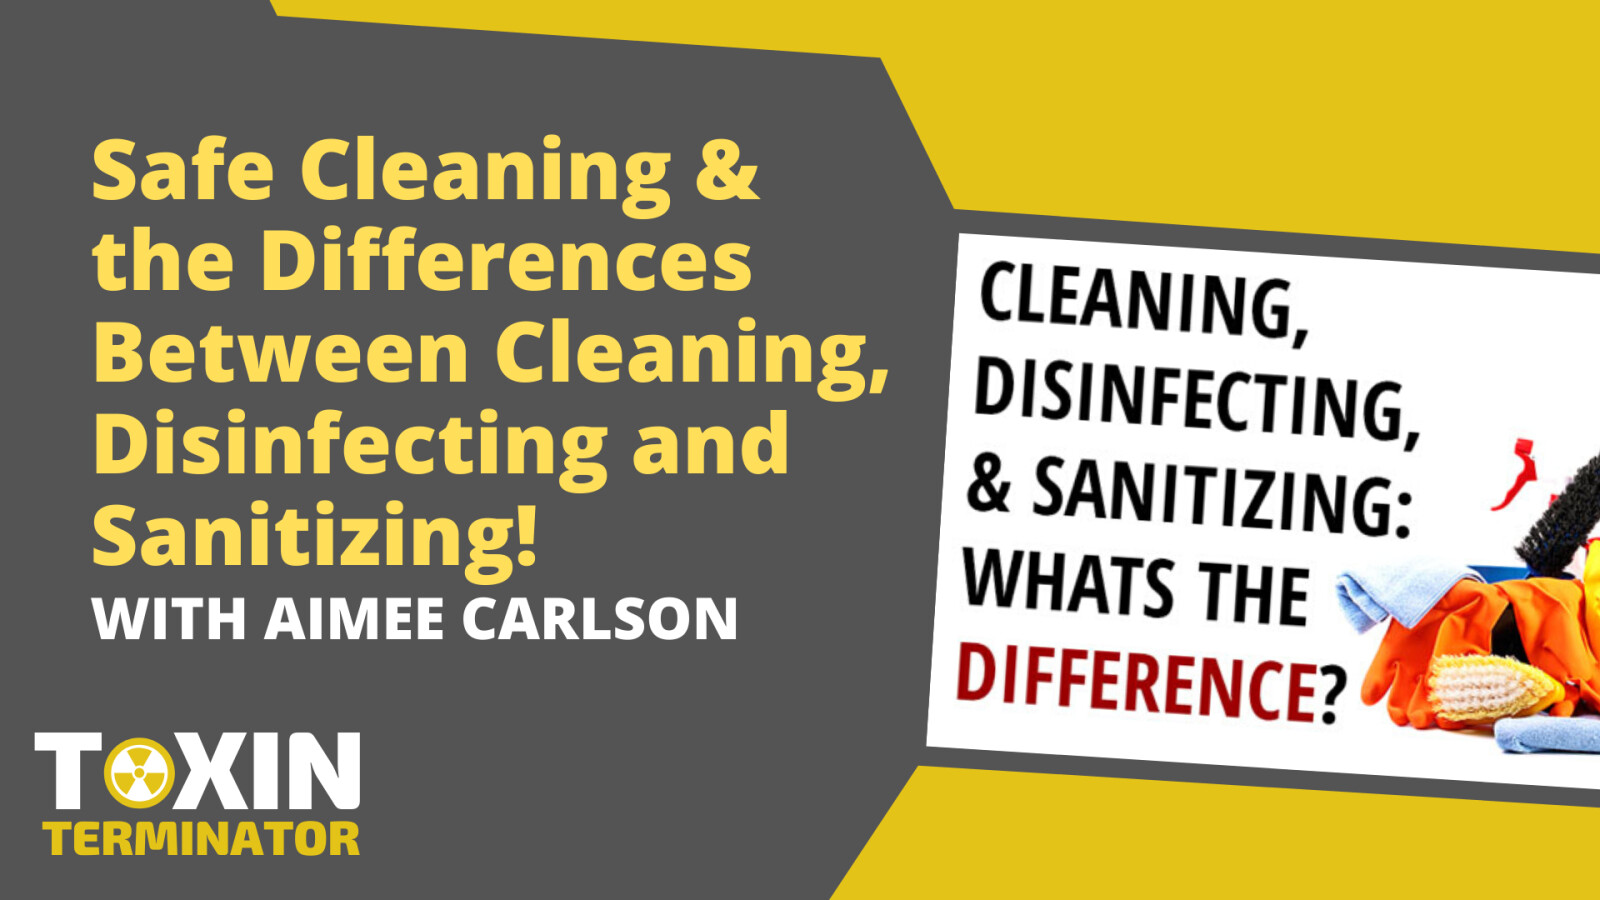 Safe Cleaning & the Differences Between Cleaning, Disinfecting and Sanitizing!